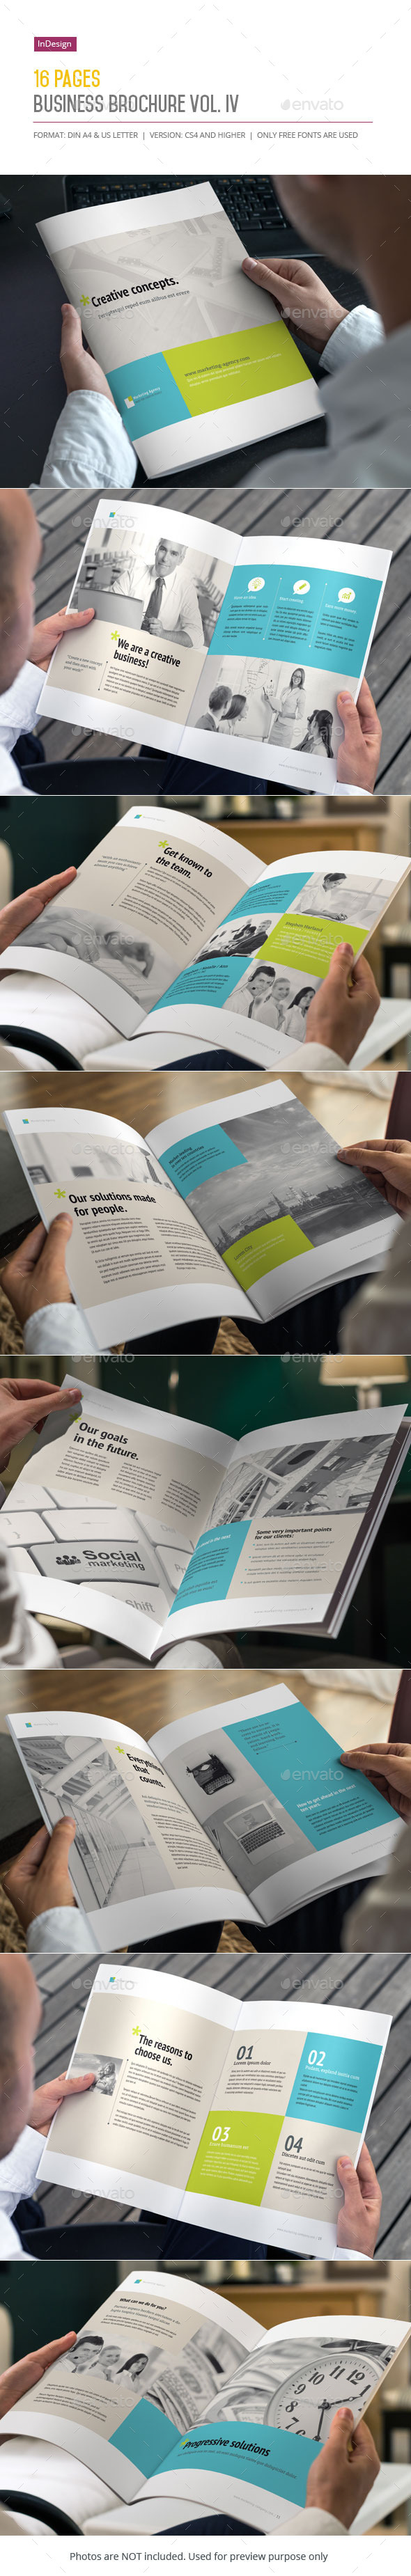 16 Pages Business Brochure Vol. IV - Corporate Brochures